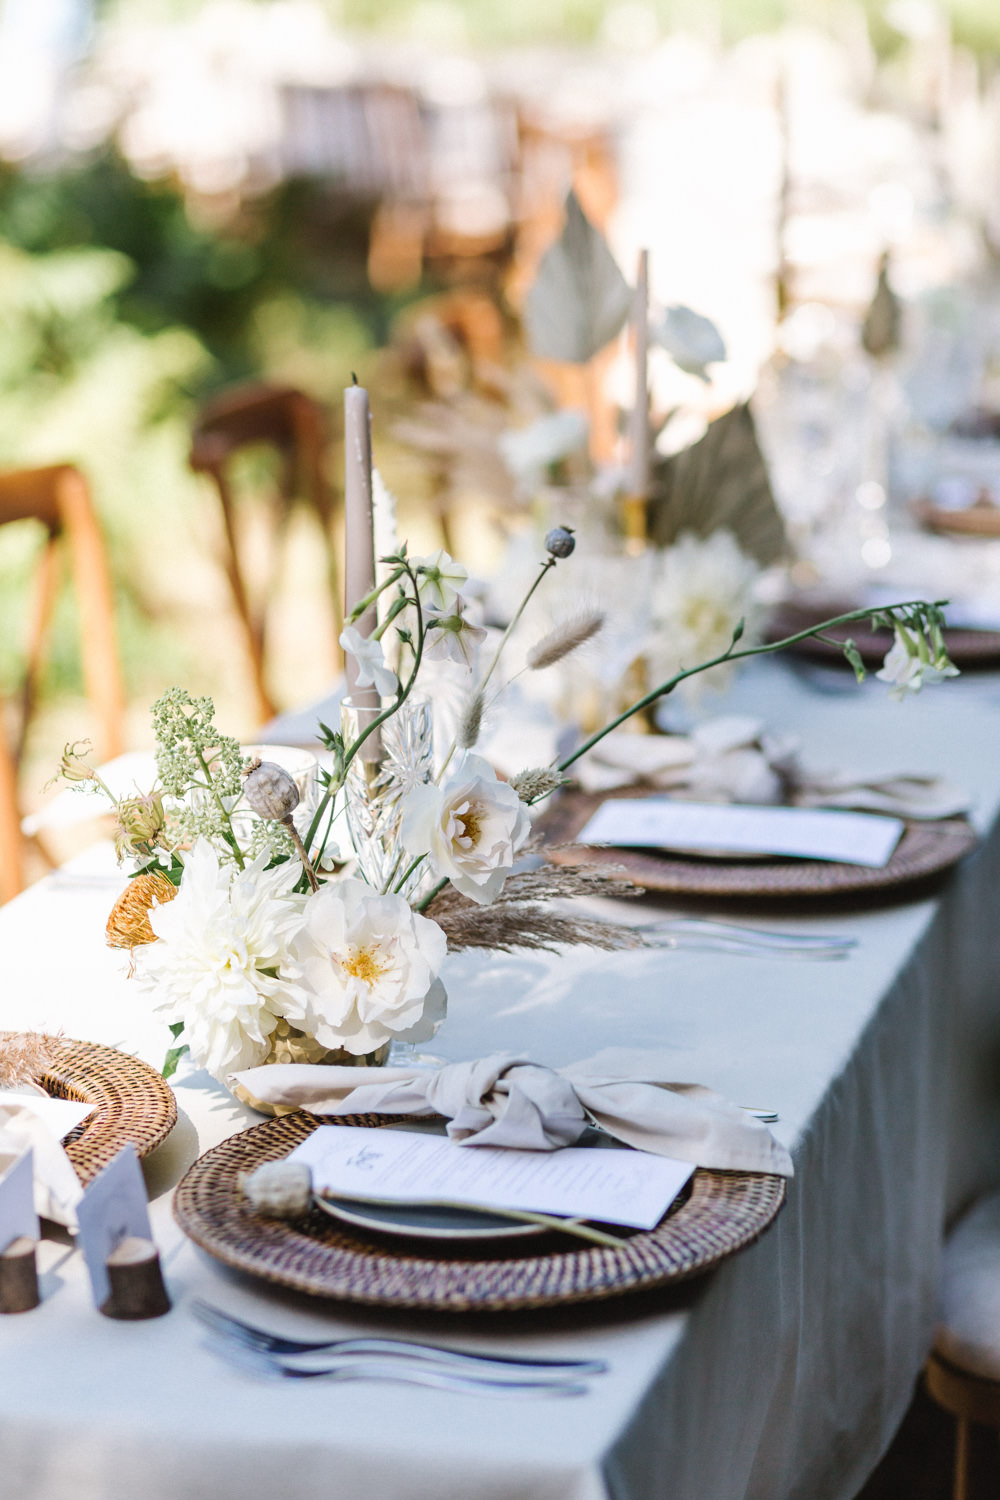 Table Tablescape Decor Rattan Charger Plates Taupe Napkins Candles Flowers Boconnoc Wedding Debs Alexander Photography